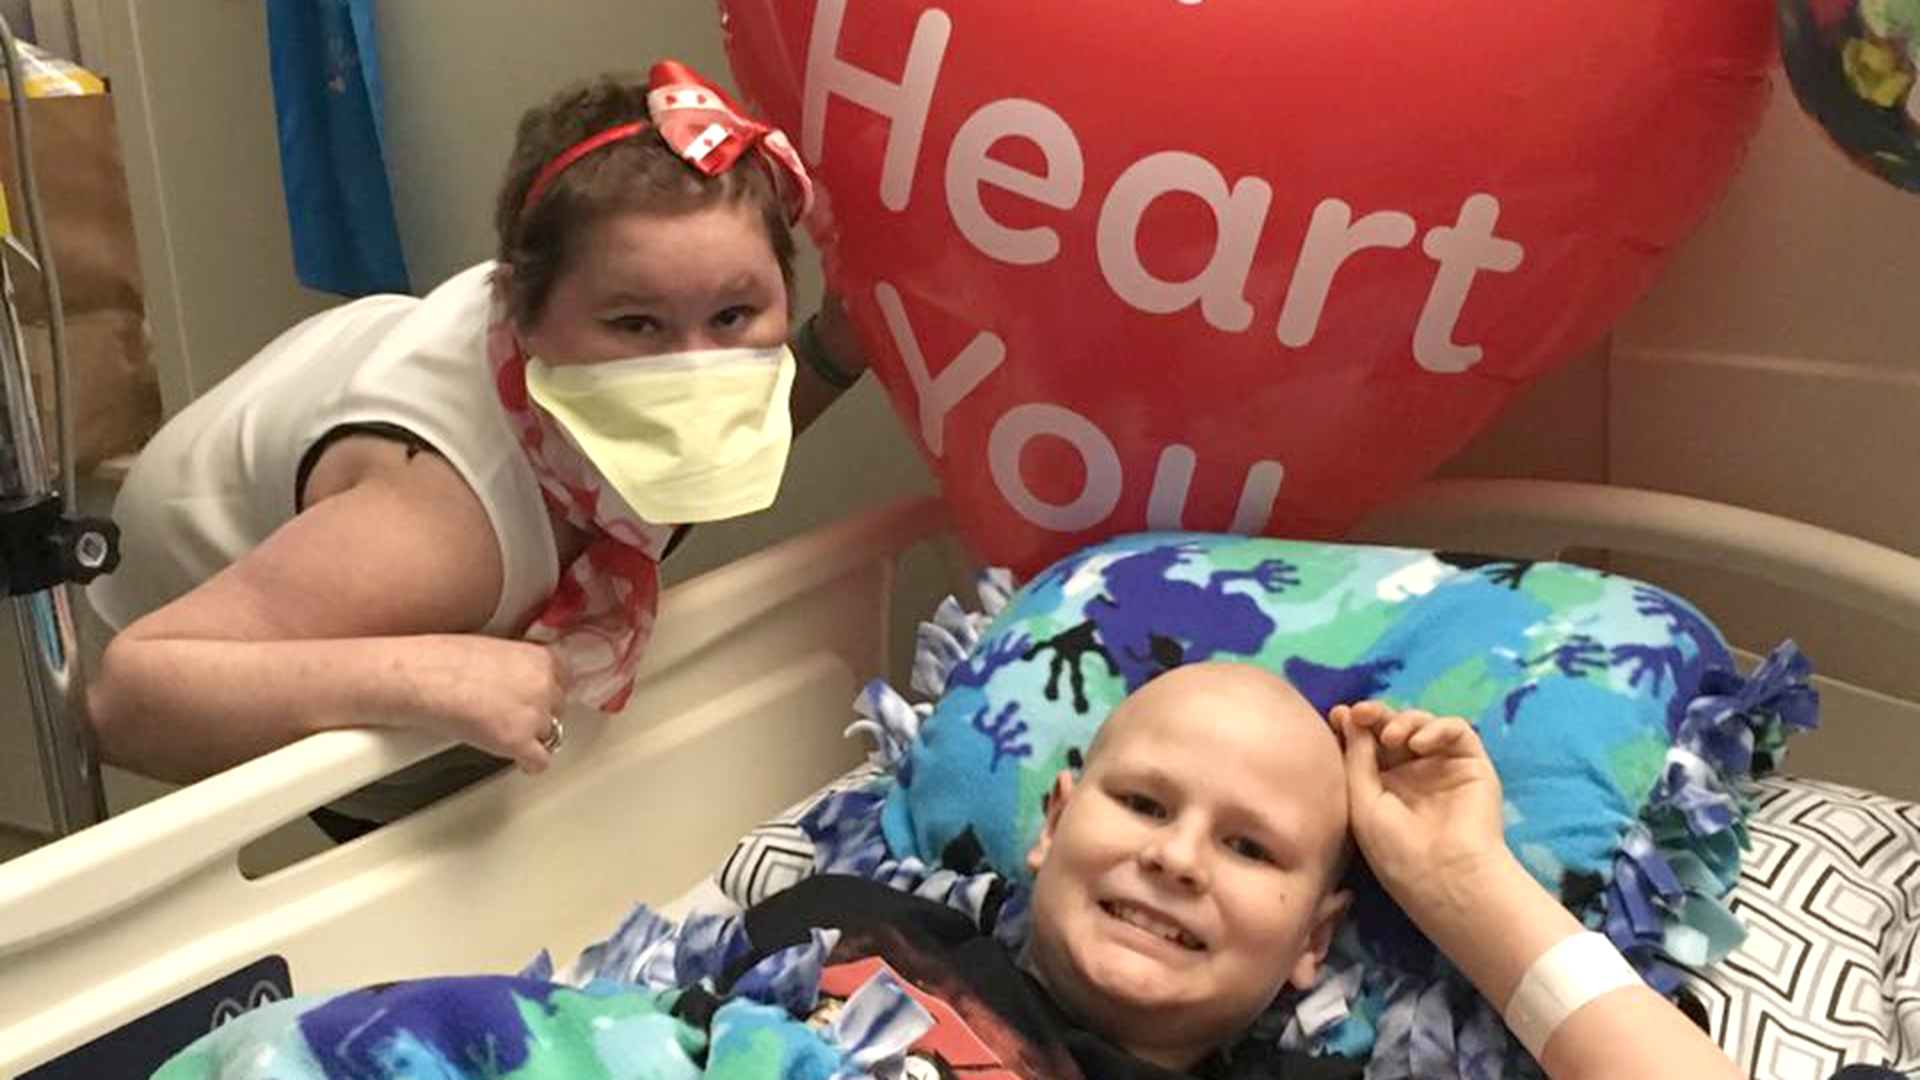 Through Kissing Surgical Fall Patients In Tween Mask Love Cancer